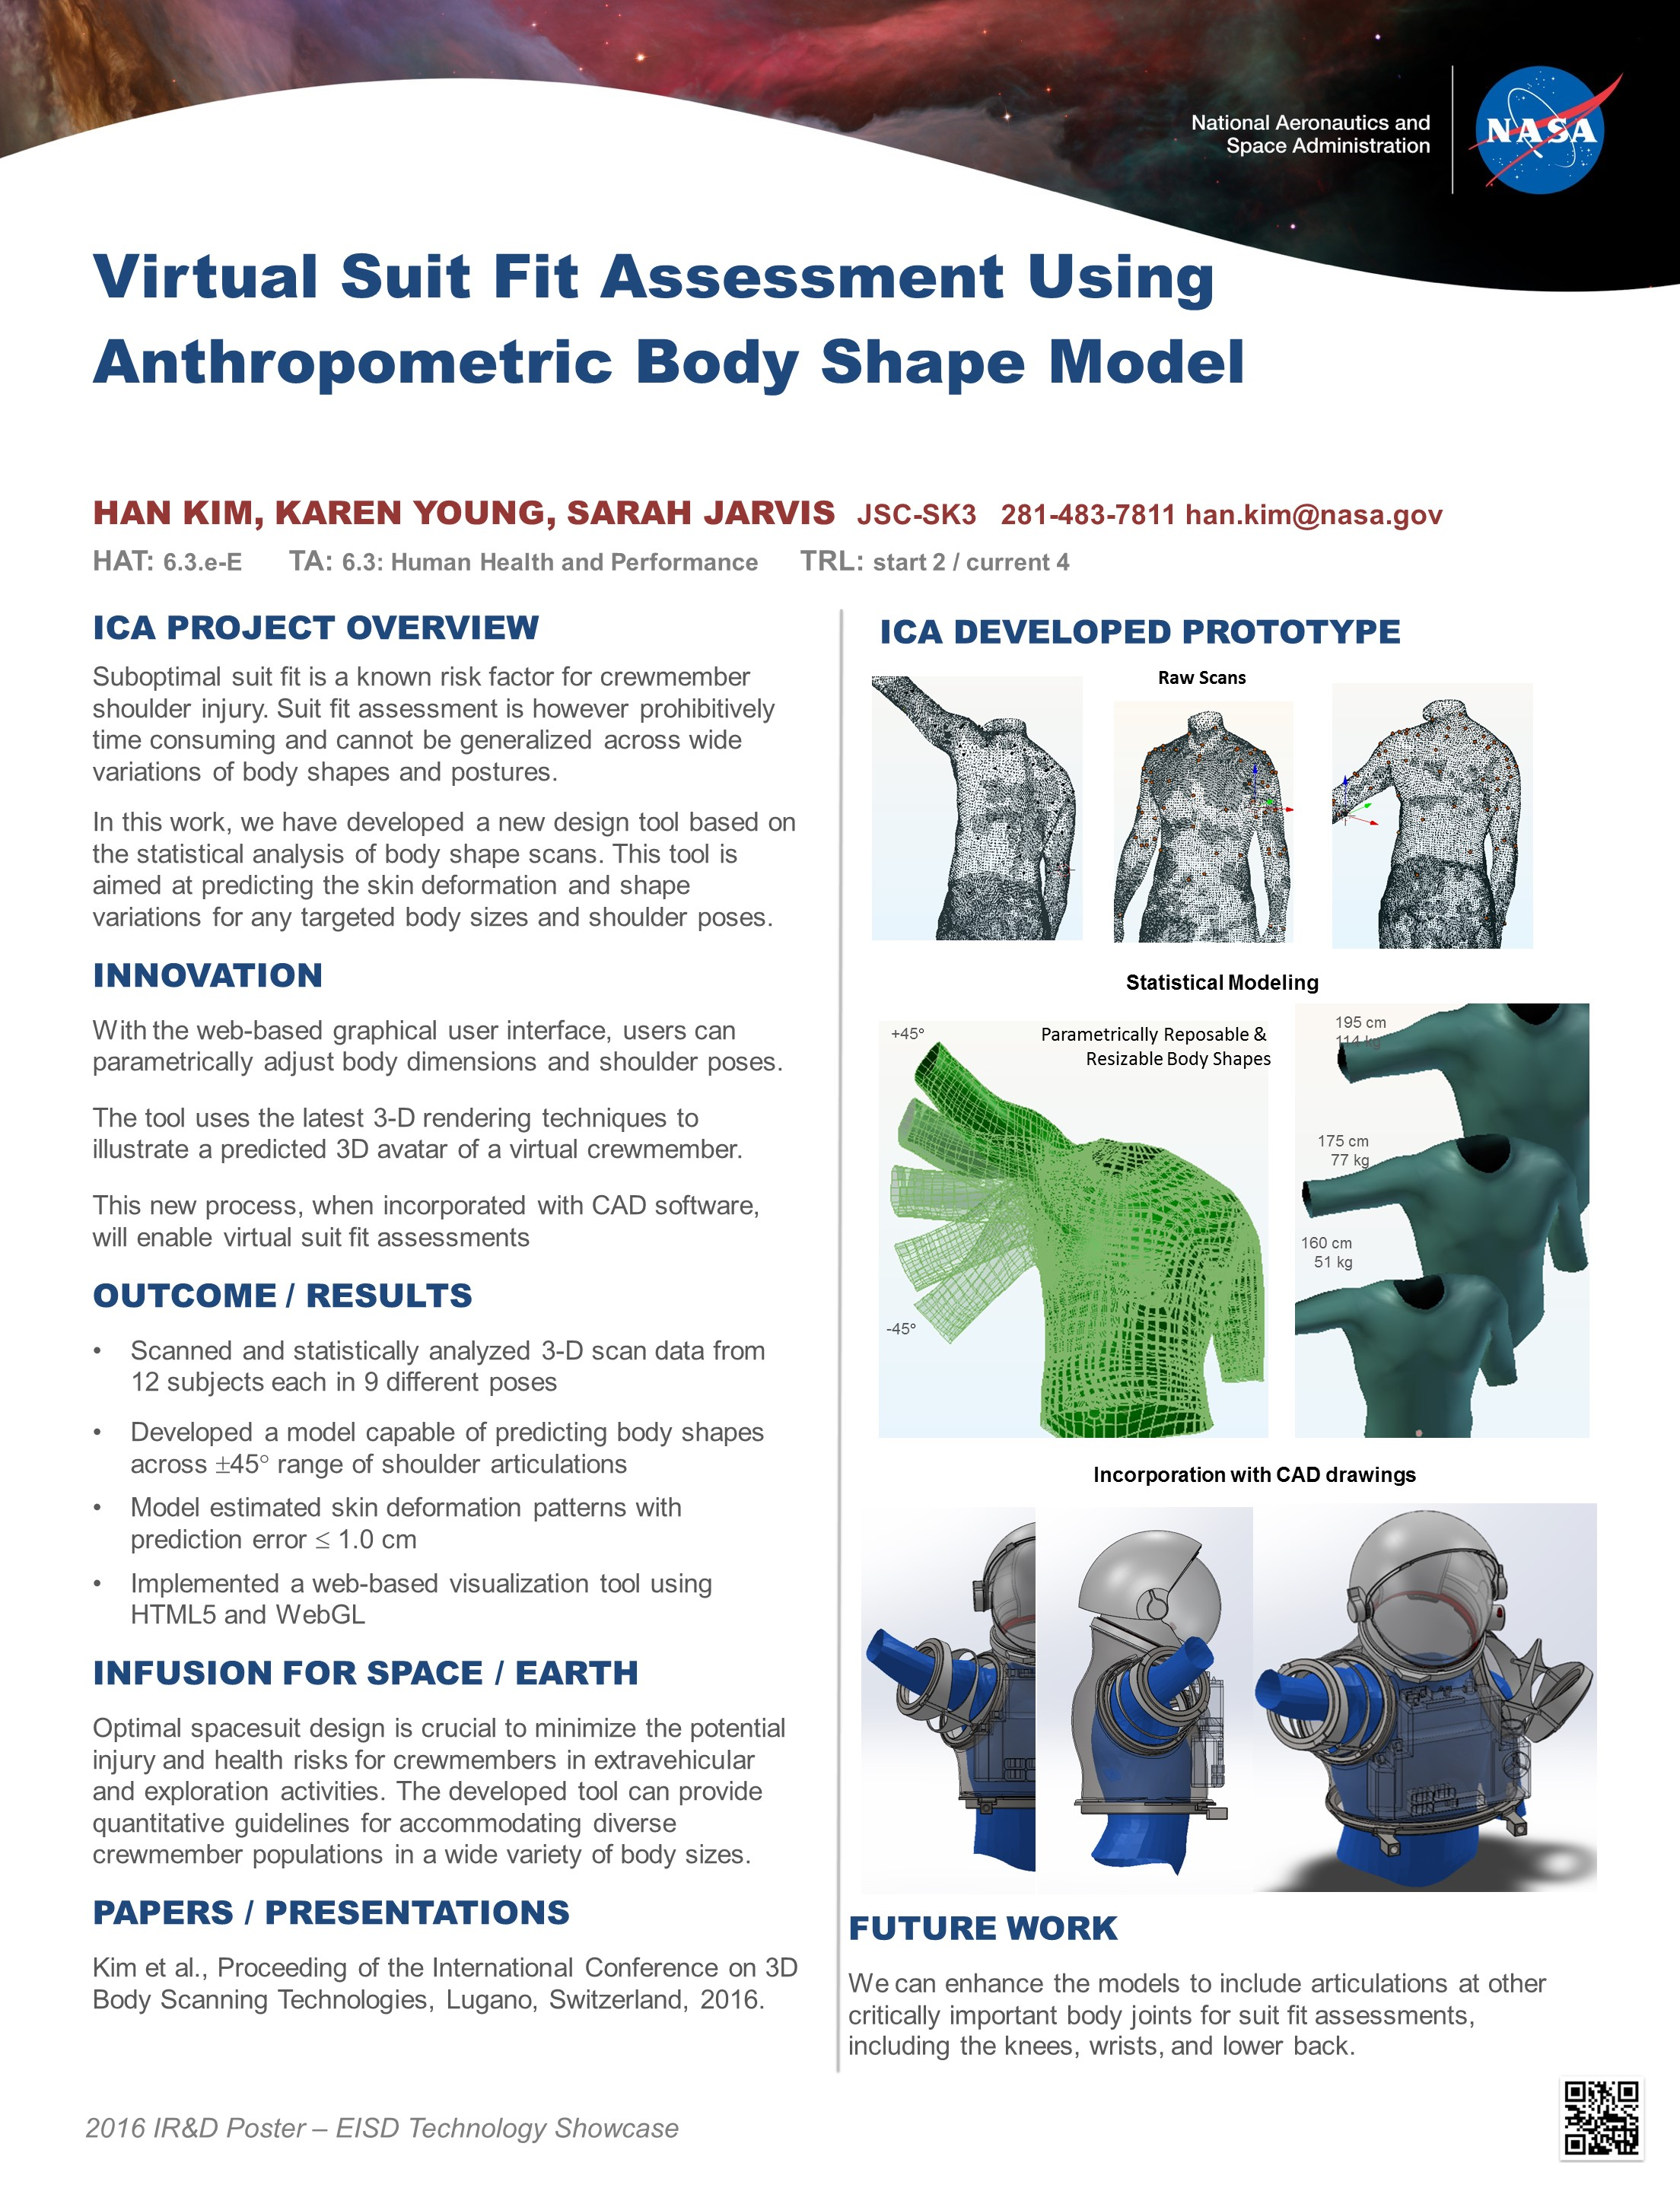 Virtual Suit Fit Assessment Using Body Shape Model Technology Showcase 2016 Poster